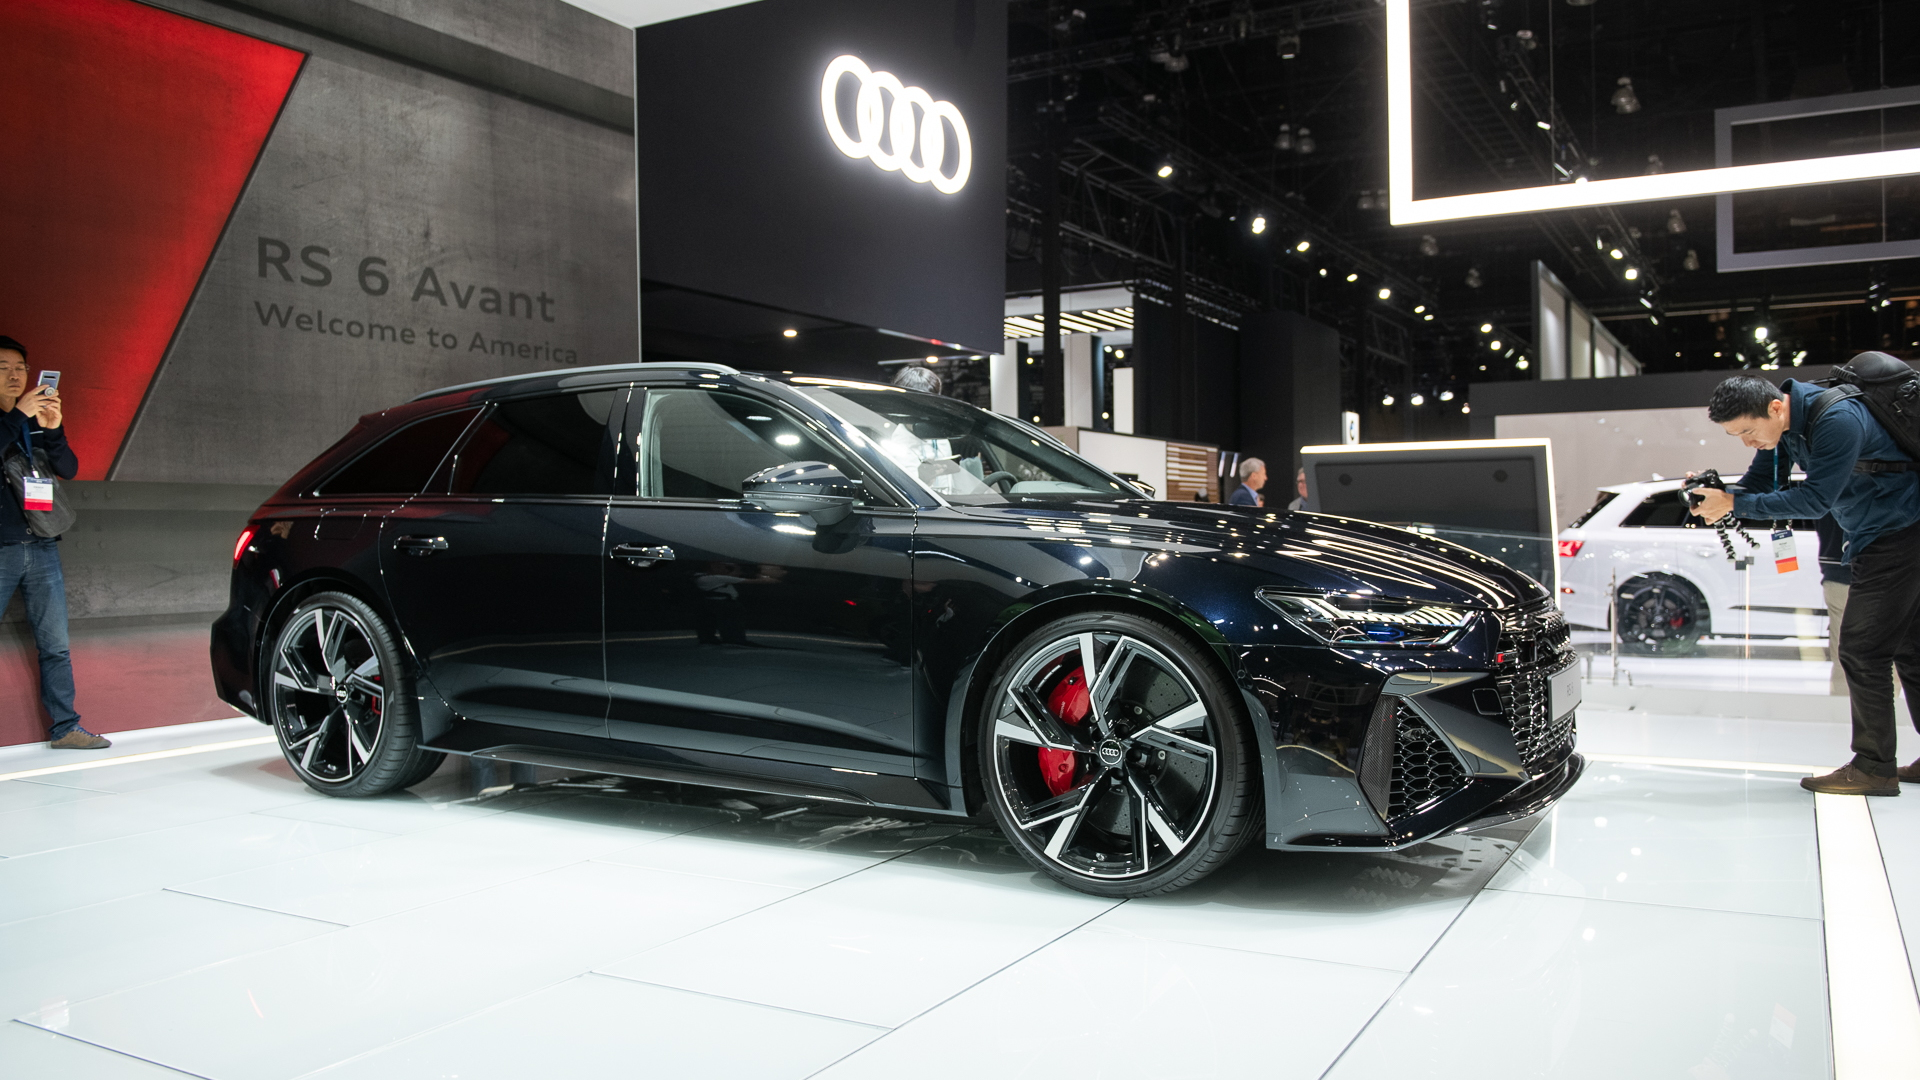 2020 Auto Show Schedule.2020 Audi Rs 6 Avant Is An Angry Wagon Due On Sale In The Us